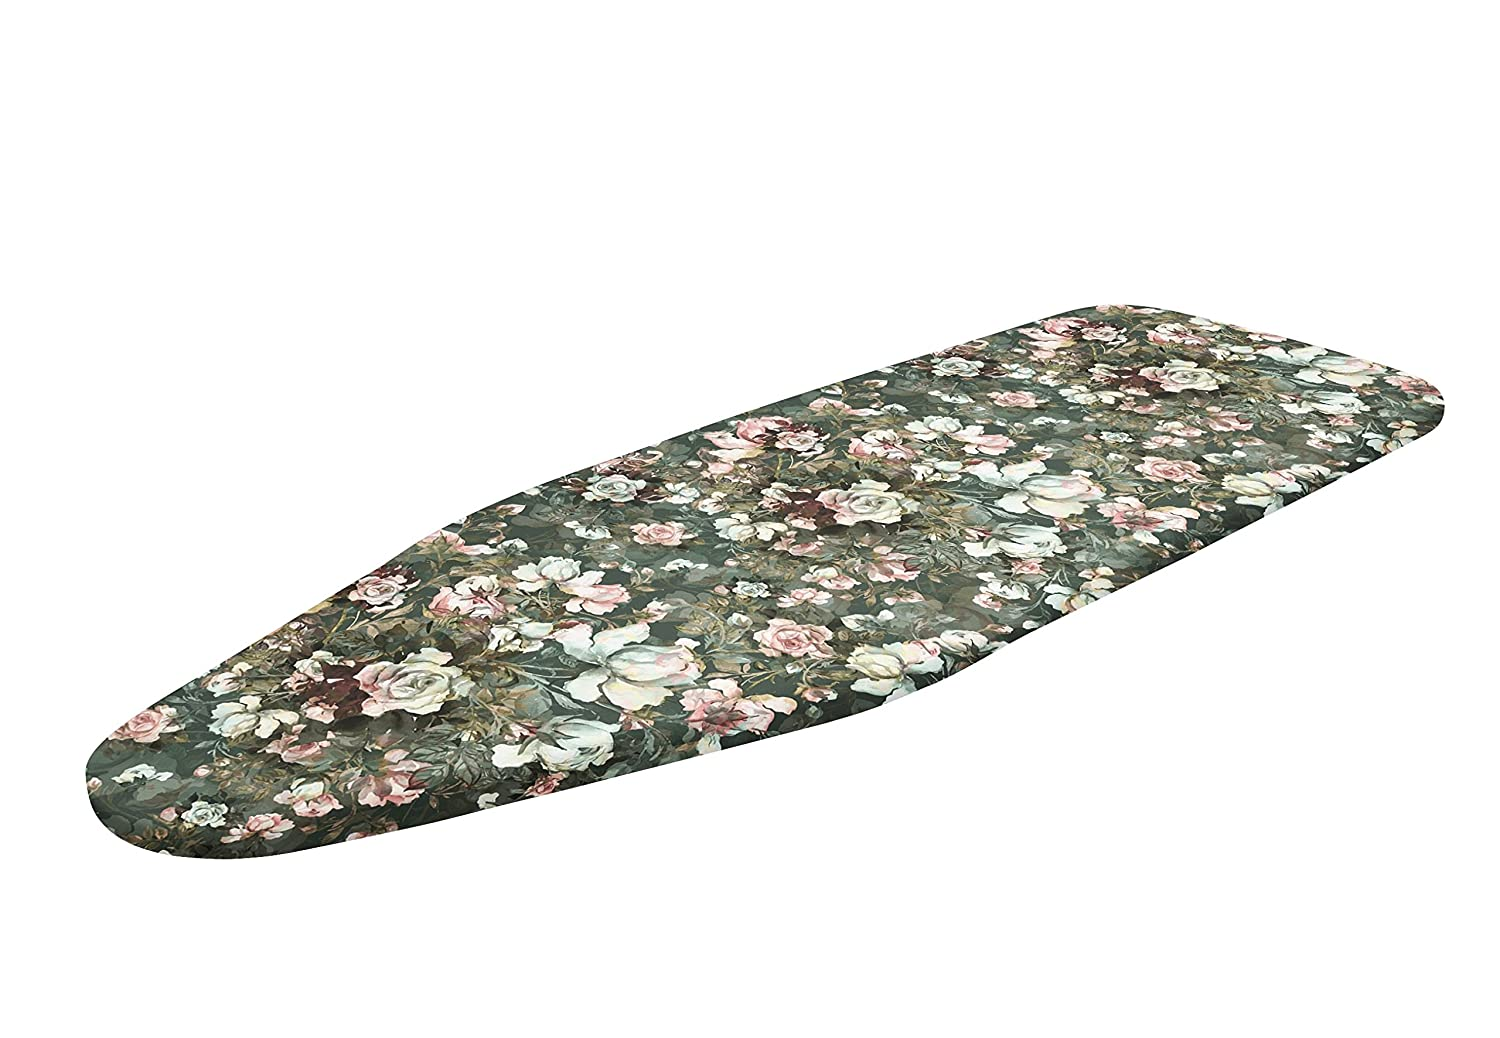 Encasa Homes Ironing Board Cover Luxury Line with Extra Thick Pad Fits Boards of Length 109-114cms /& Width 30-35cms Roses